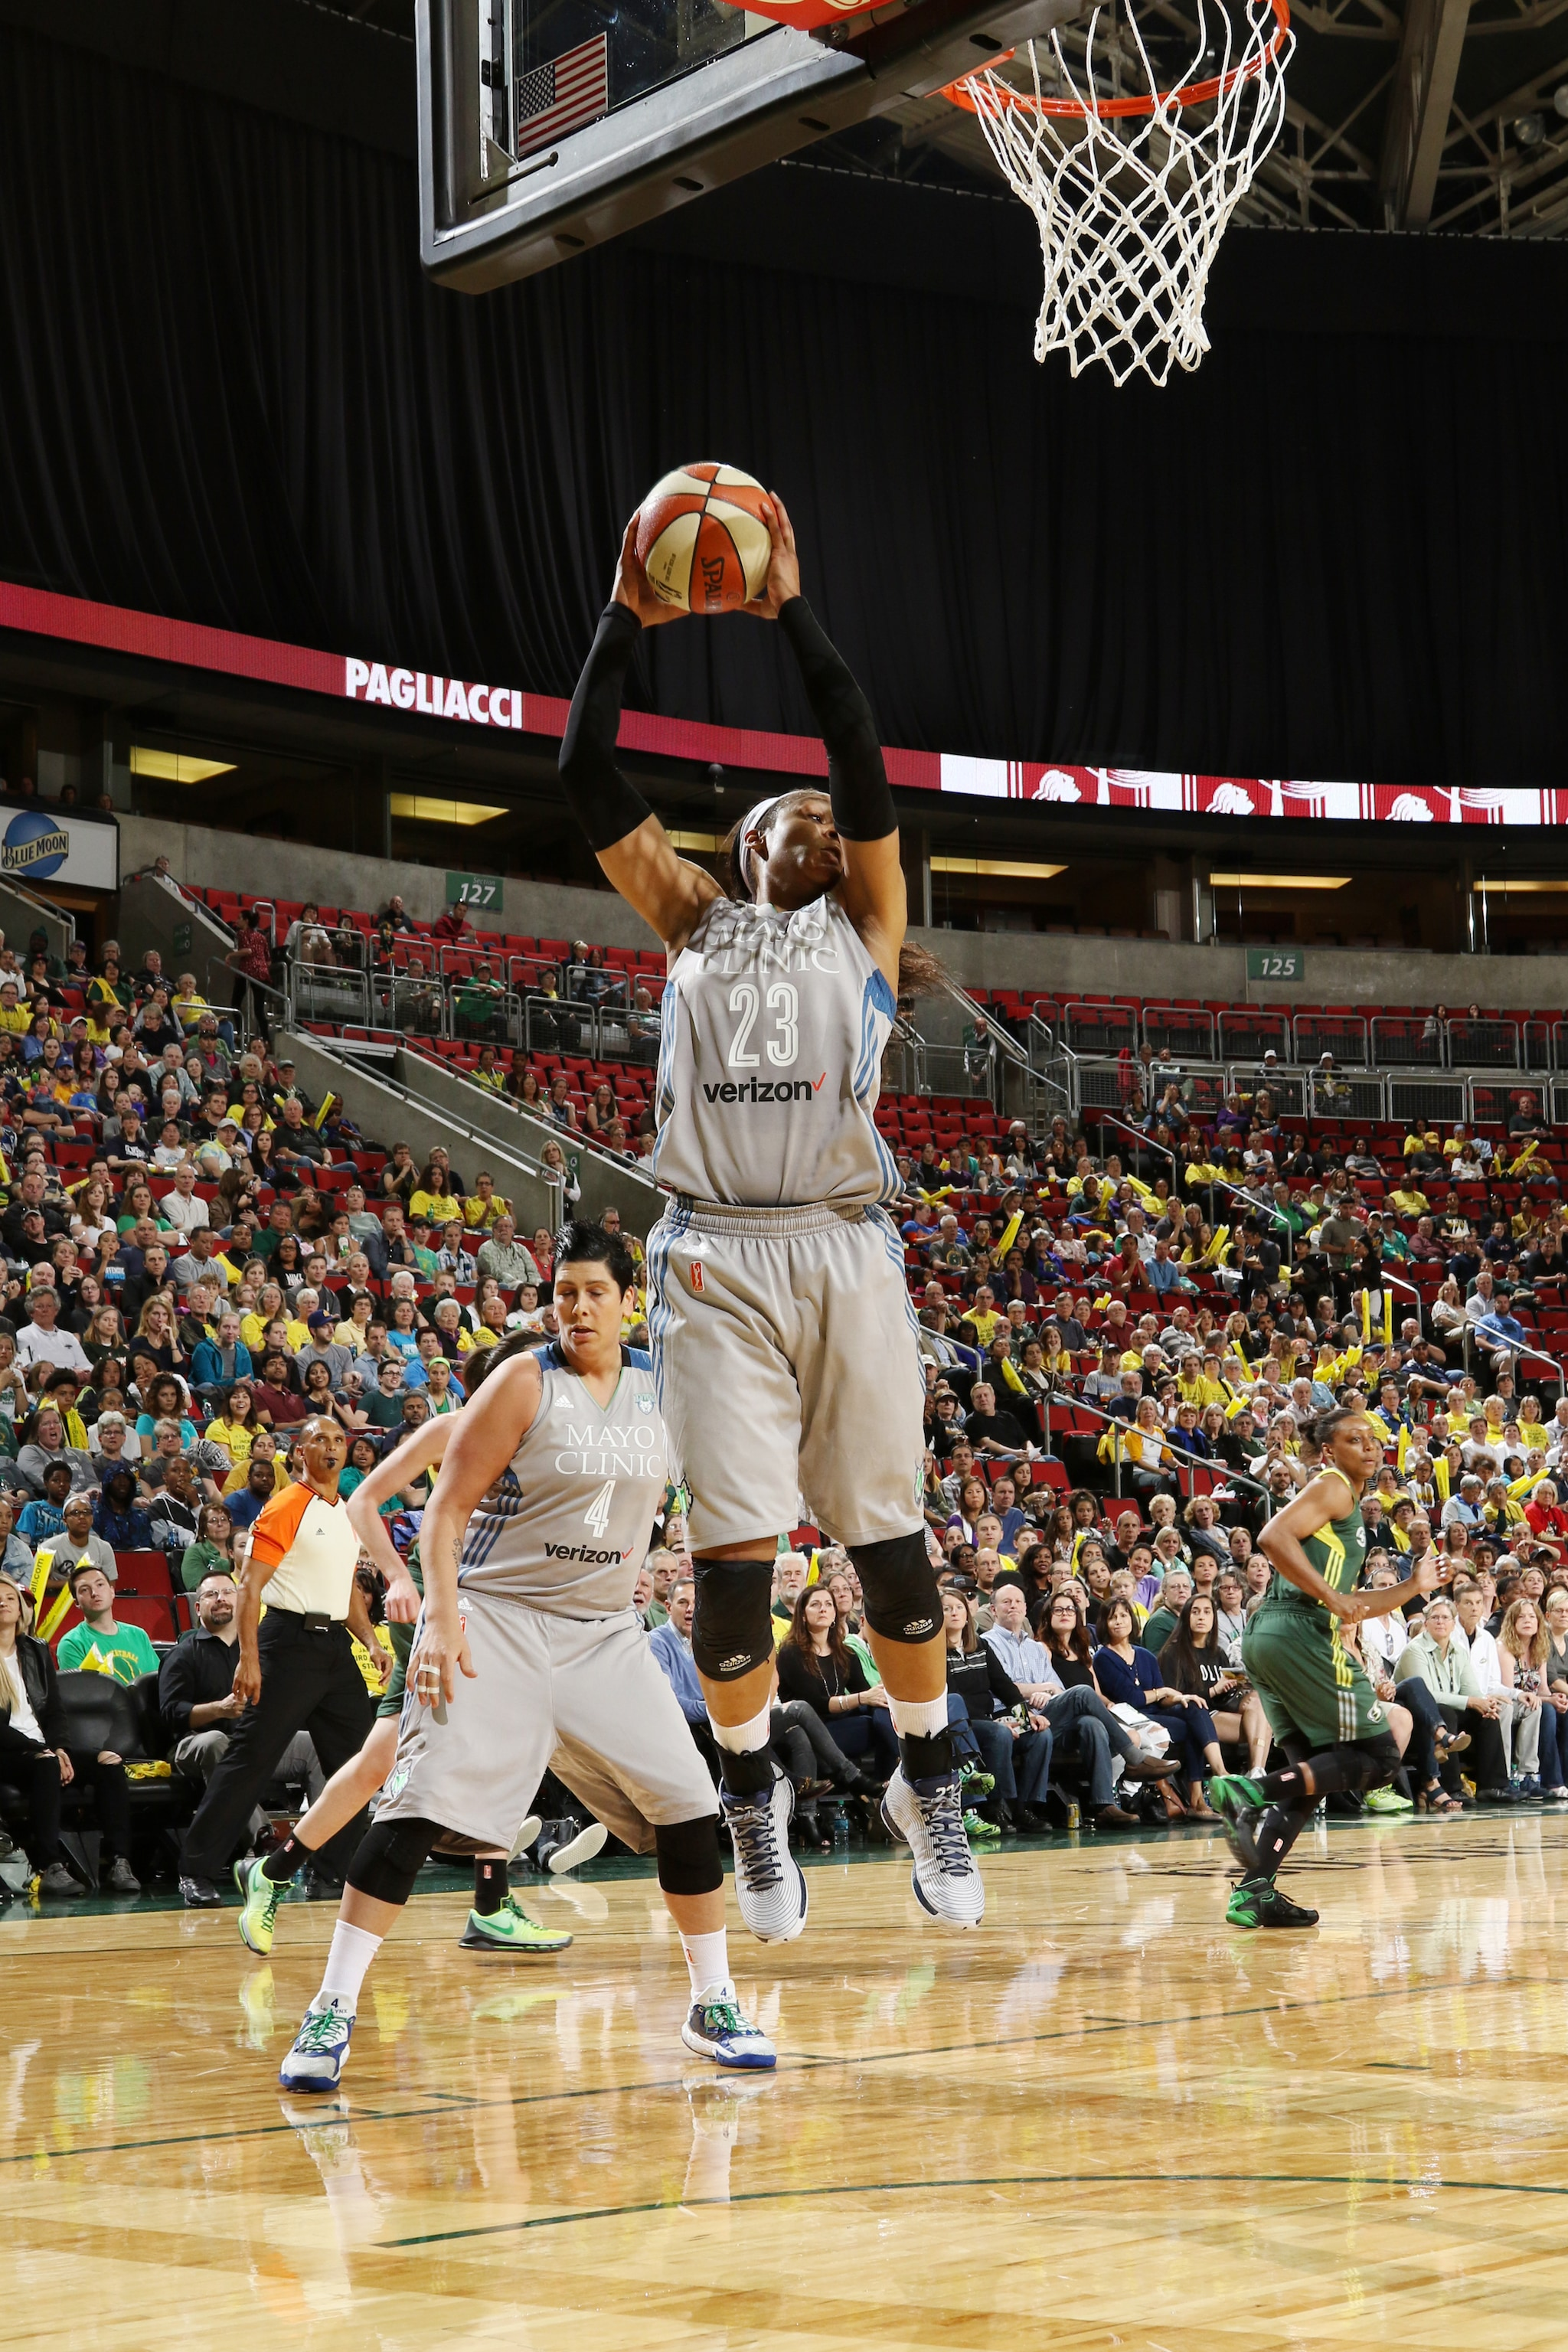 SEATTLE, WA - MAY 22:  Maya Moore #23 of the Minnesota Lynx grabs the rebound against the Seattle Storm on May 22, 2016 at KeyArena in Seattle, Washington. NOTE TO USER: User expressly acknowledges and agrees that, by downloading and or using this photograph, user is consenting to the terms and conditions of Getty Images License Agreement. Mandatory Copyright Notice: Copyright 2016 NBAE (Photo by Josh Huston/NBAE via Getty Images)